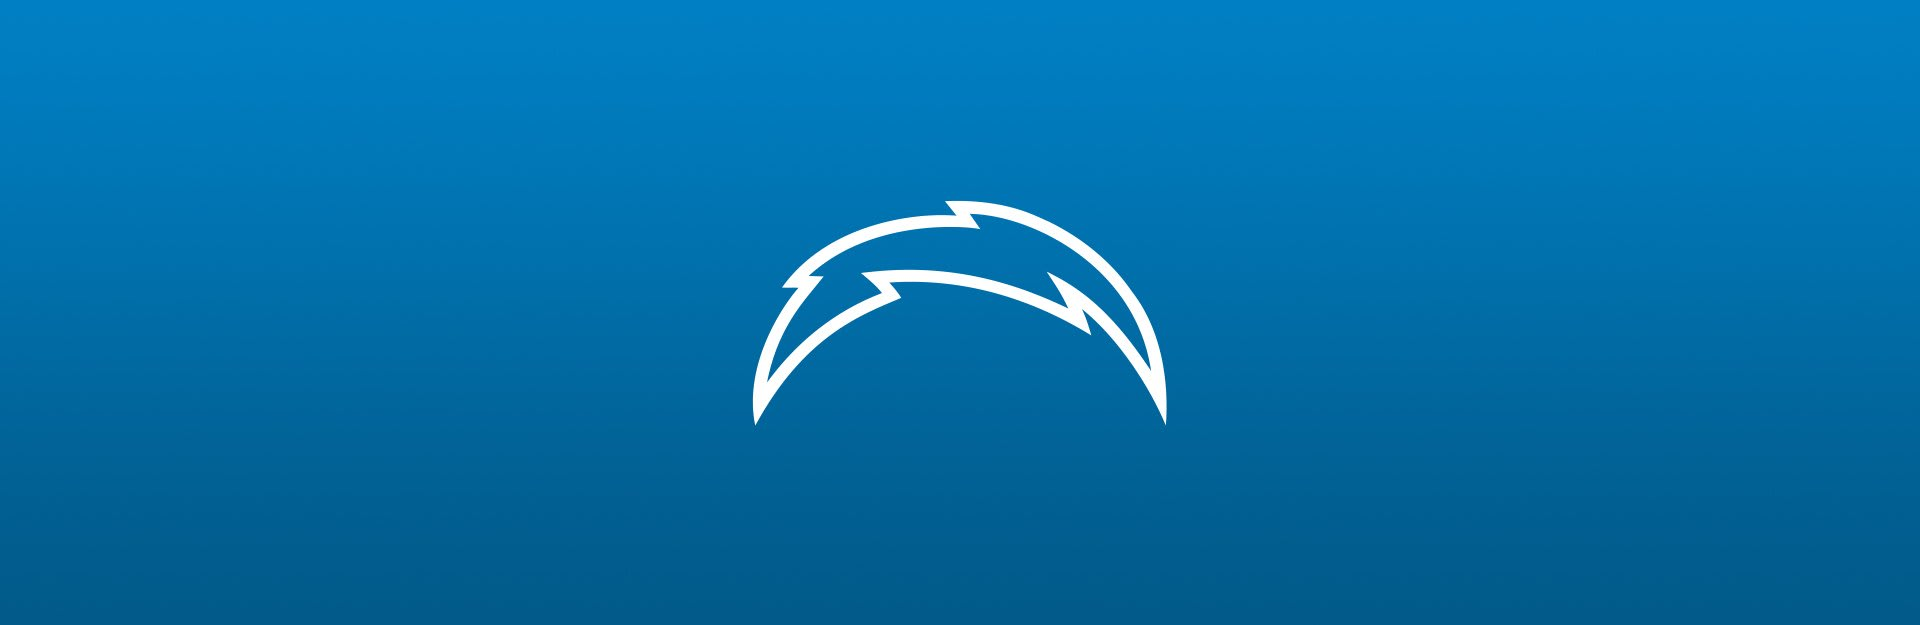 Los Angeles Chargers logo on blue background